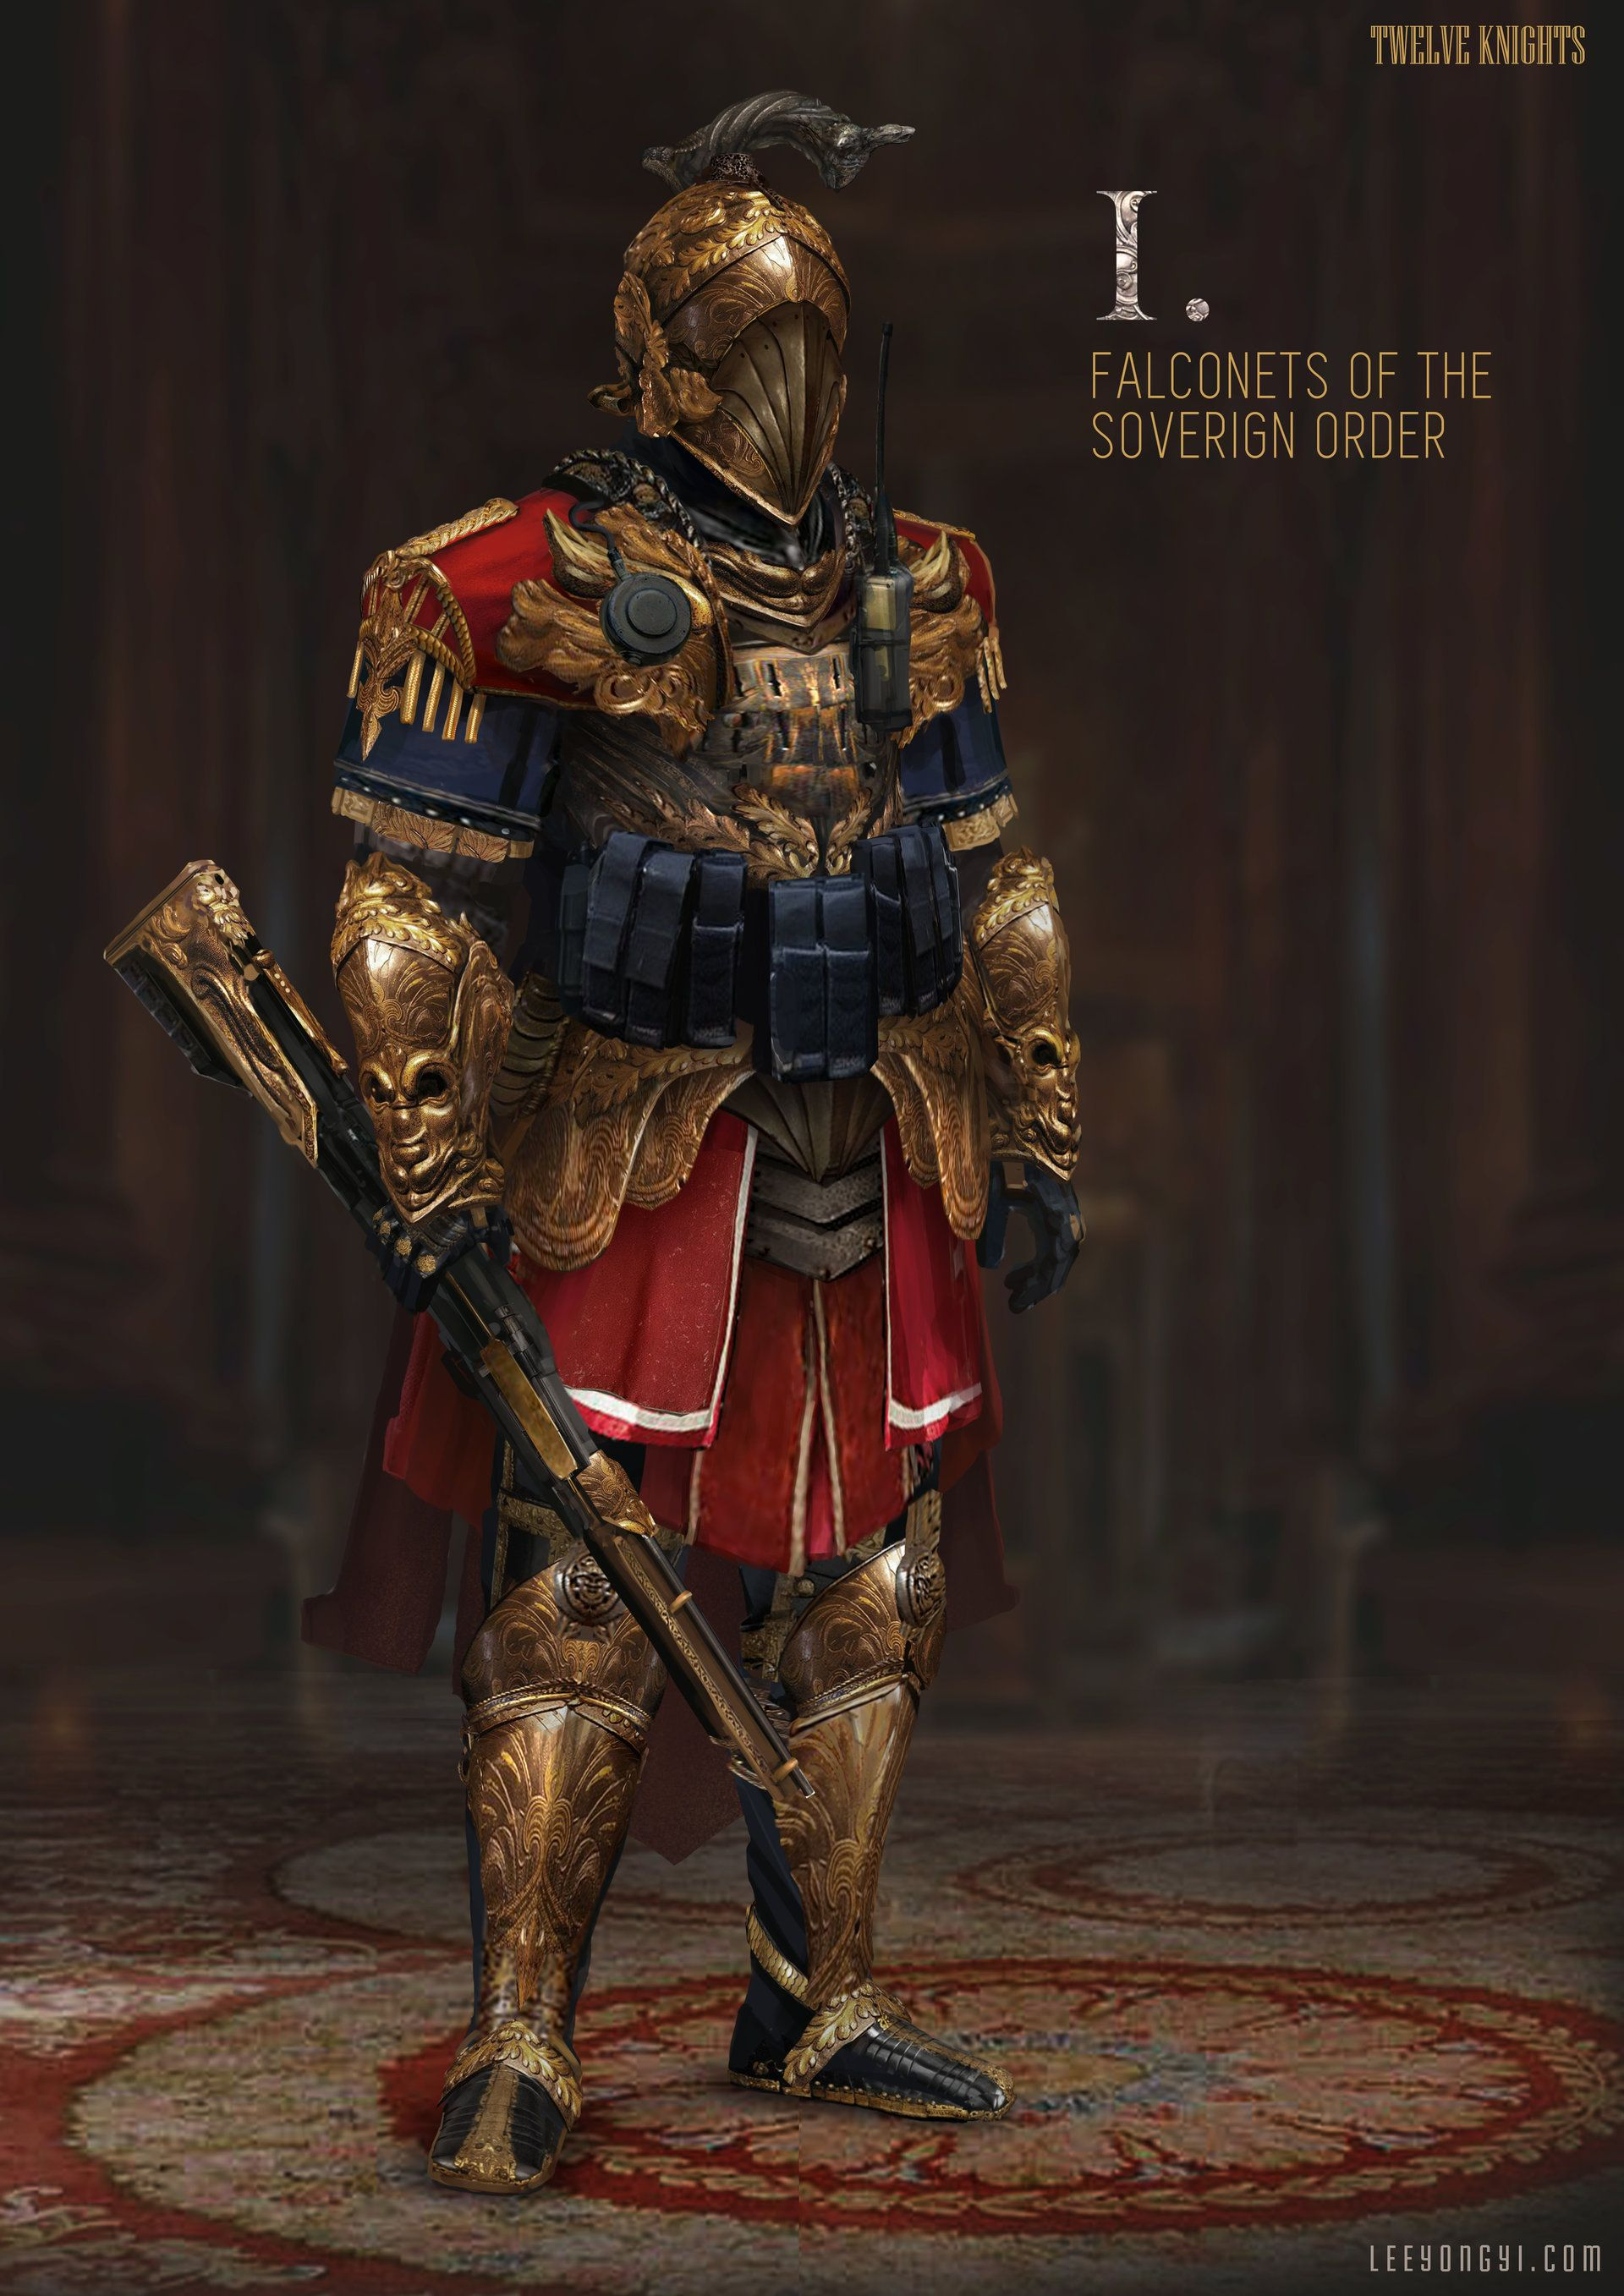 ArtStation - Falconets of the Soverign Order, Yong Yi Lee